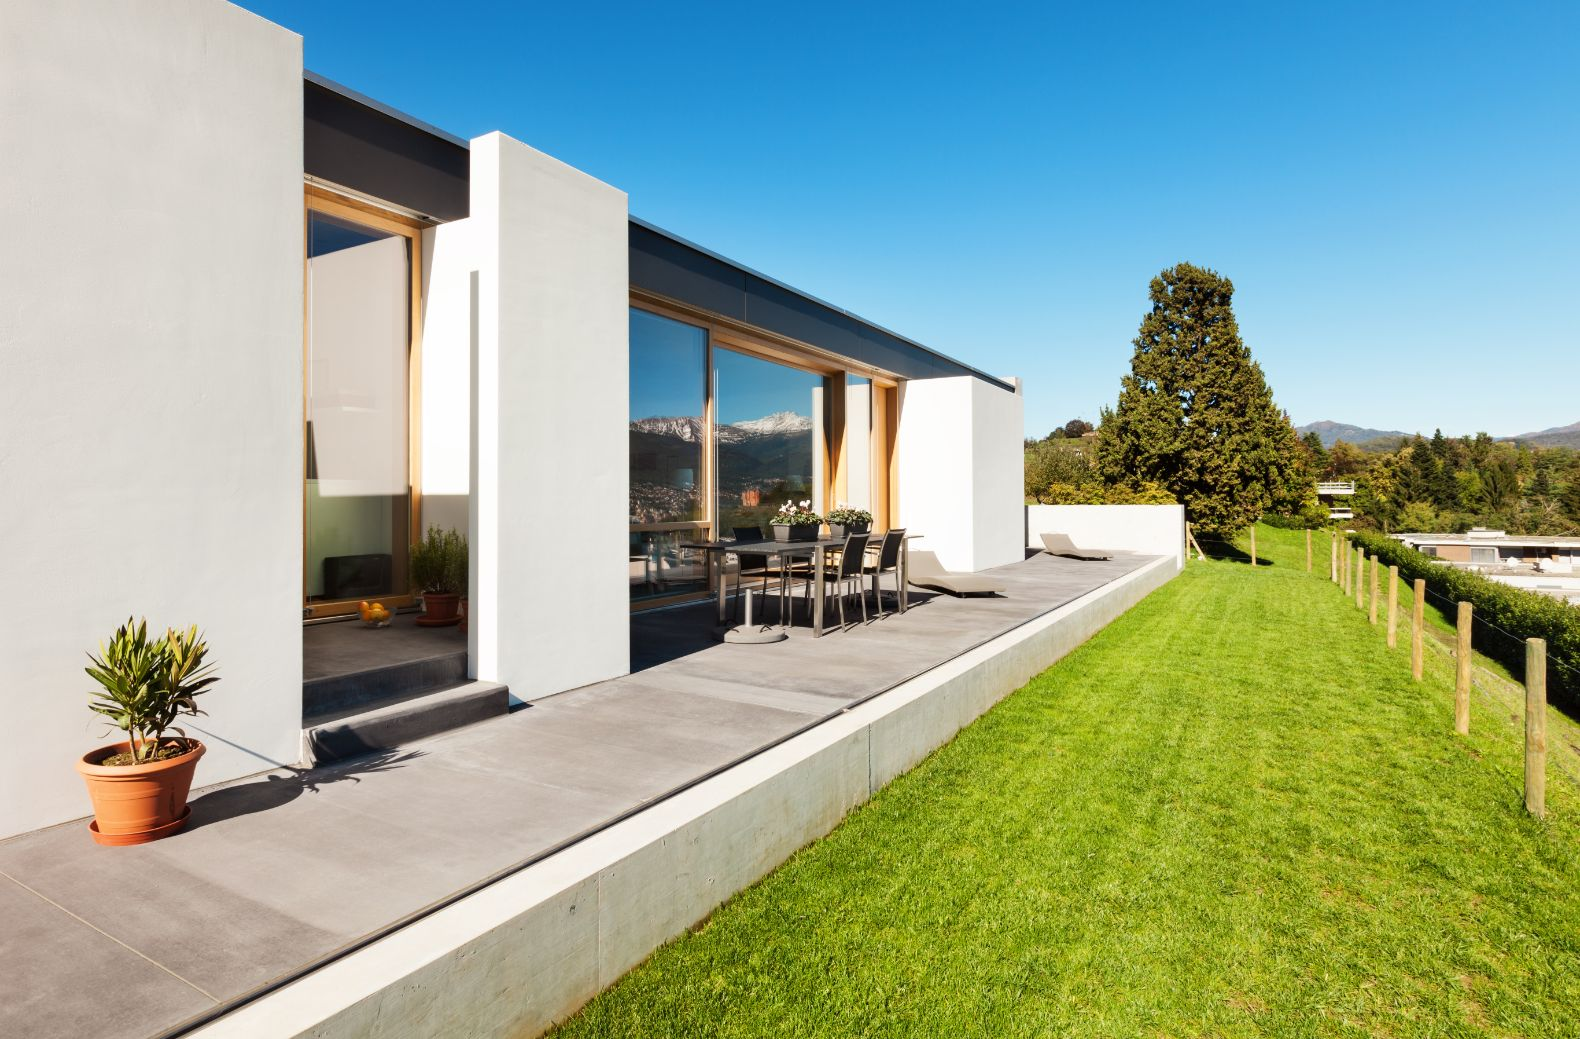 Outdoor deck and turf laying on the Mornington Peninsula